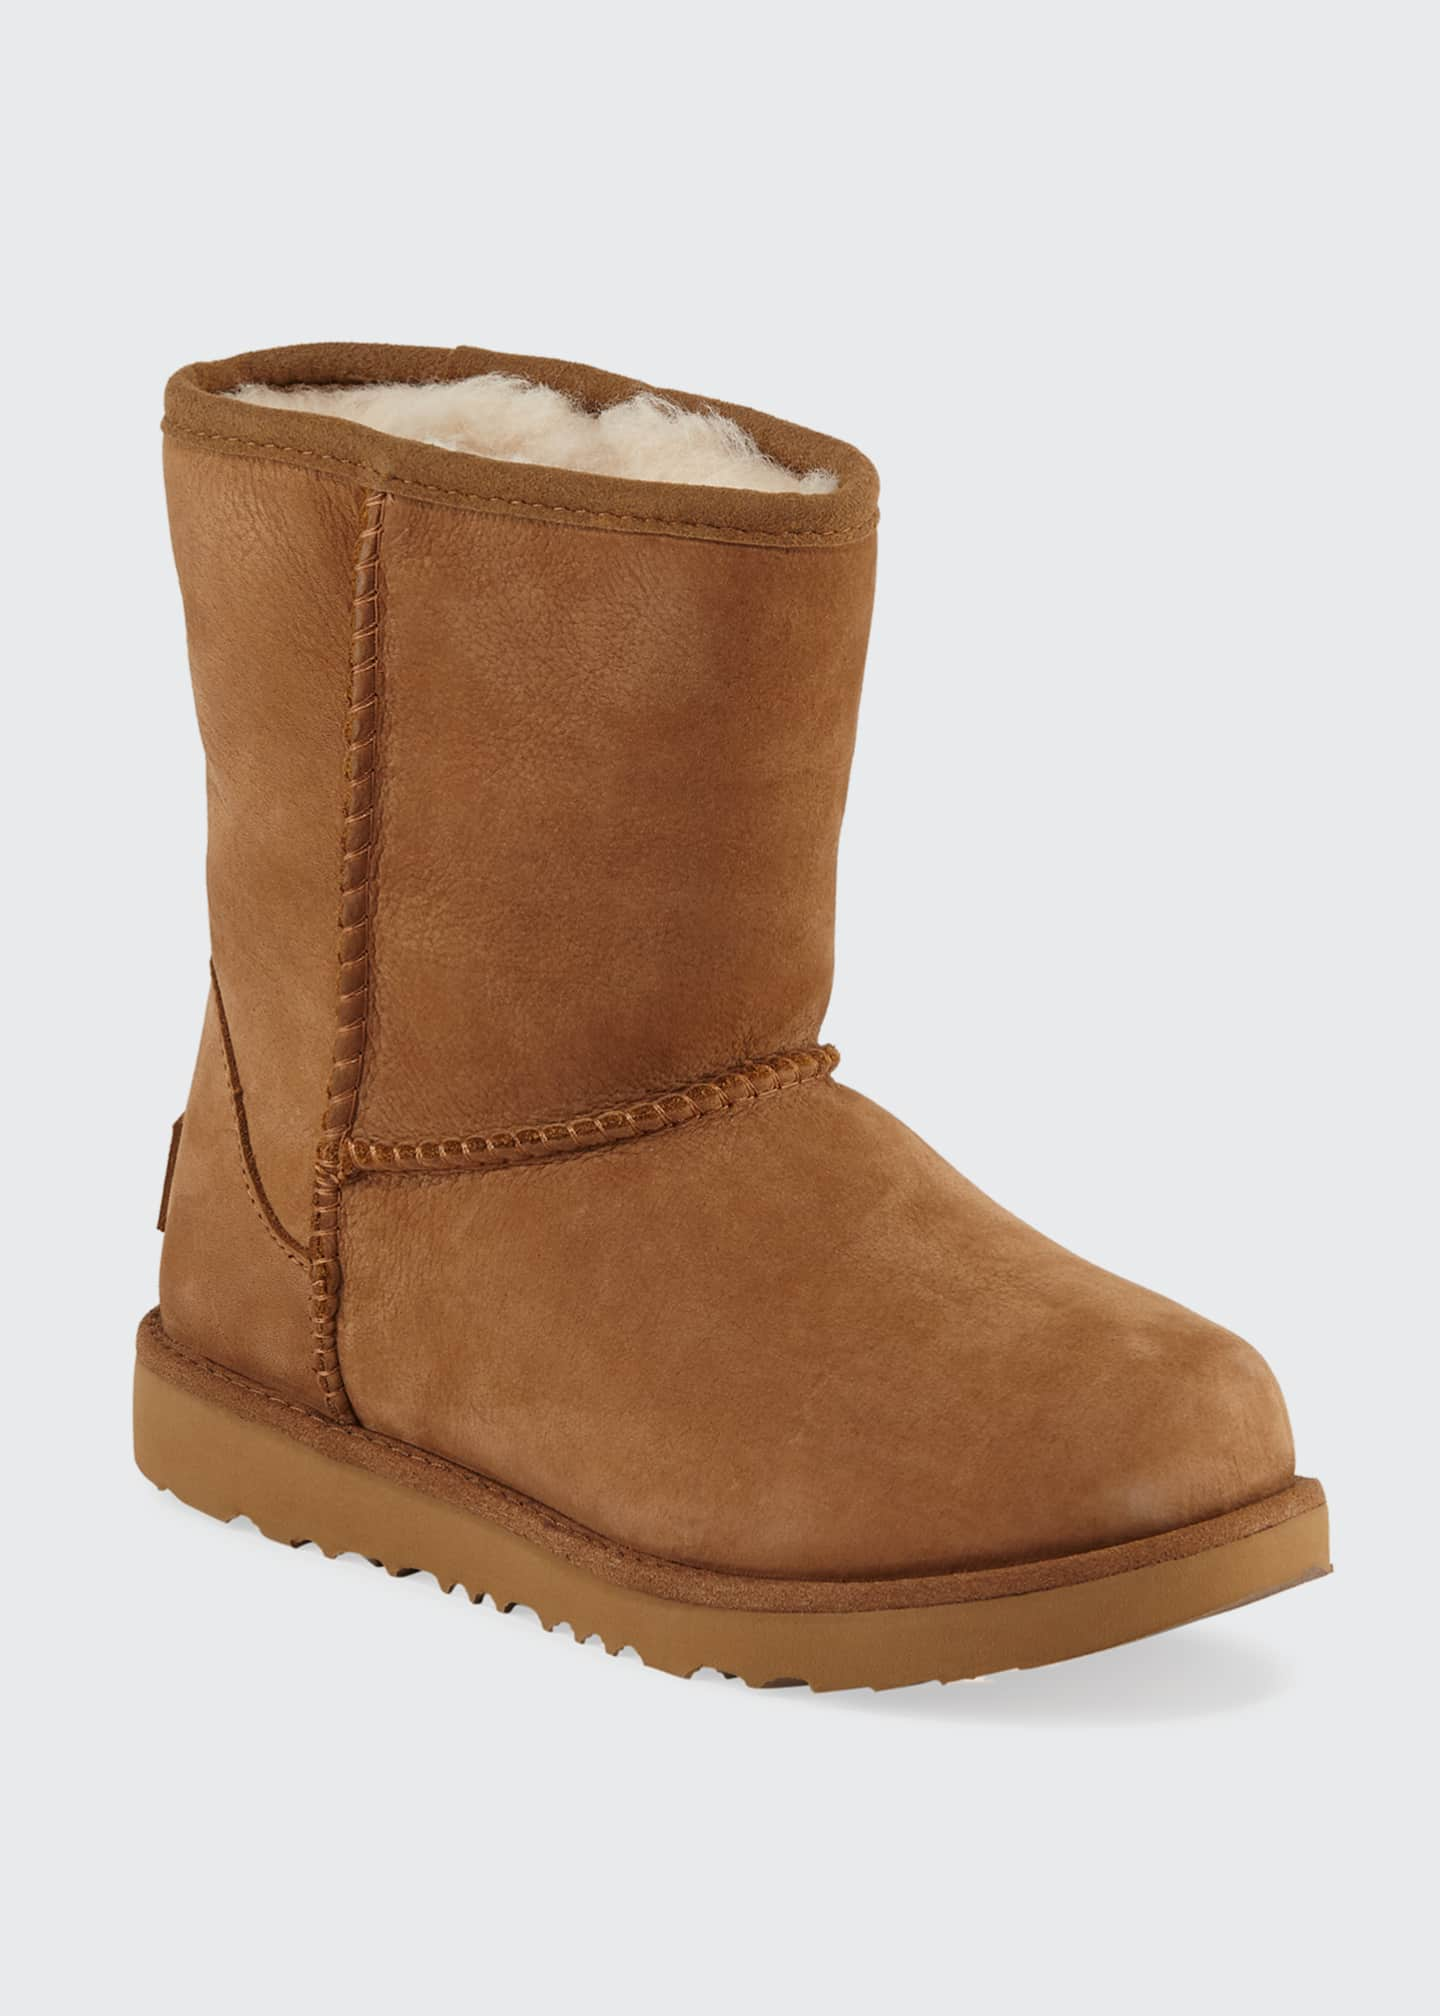 UGG Classic Short II Suede Boots, Baby/Toddler